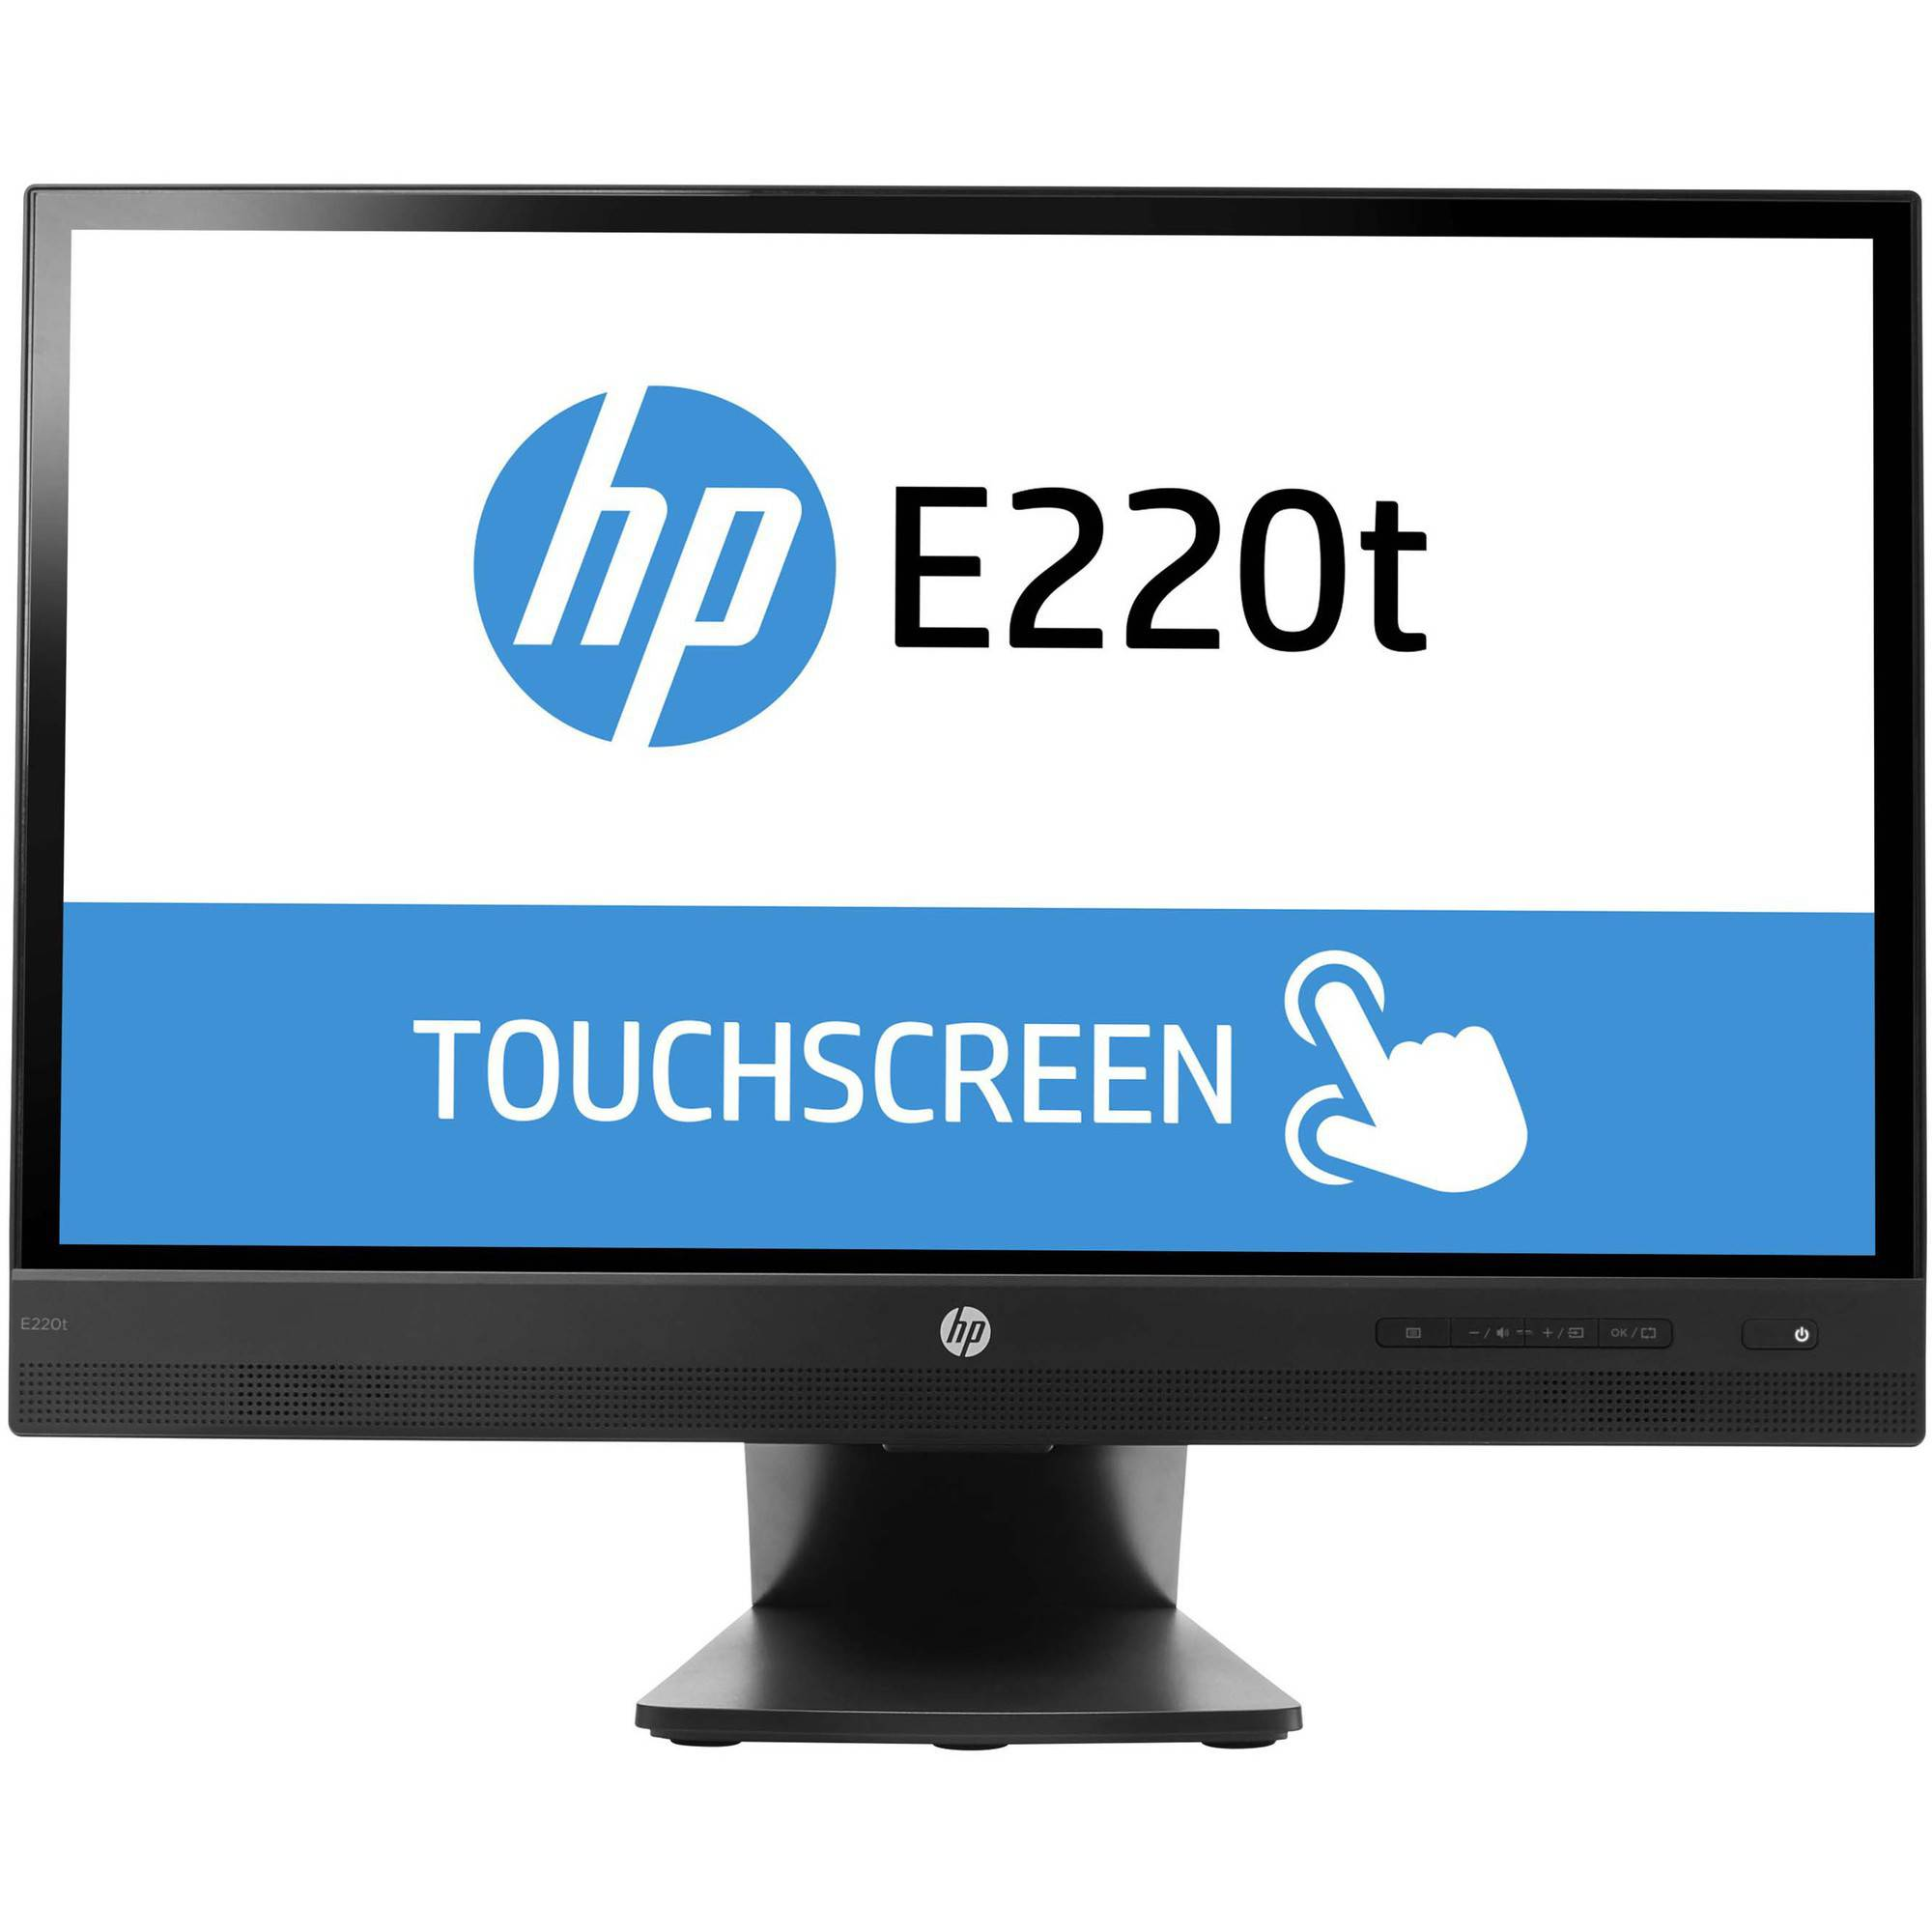 HP EliteDisplay E220t 21.5